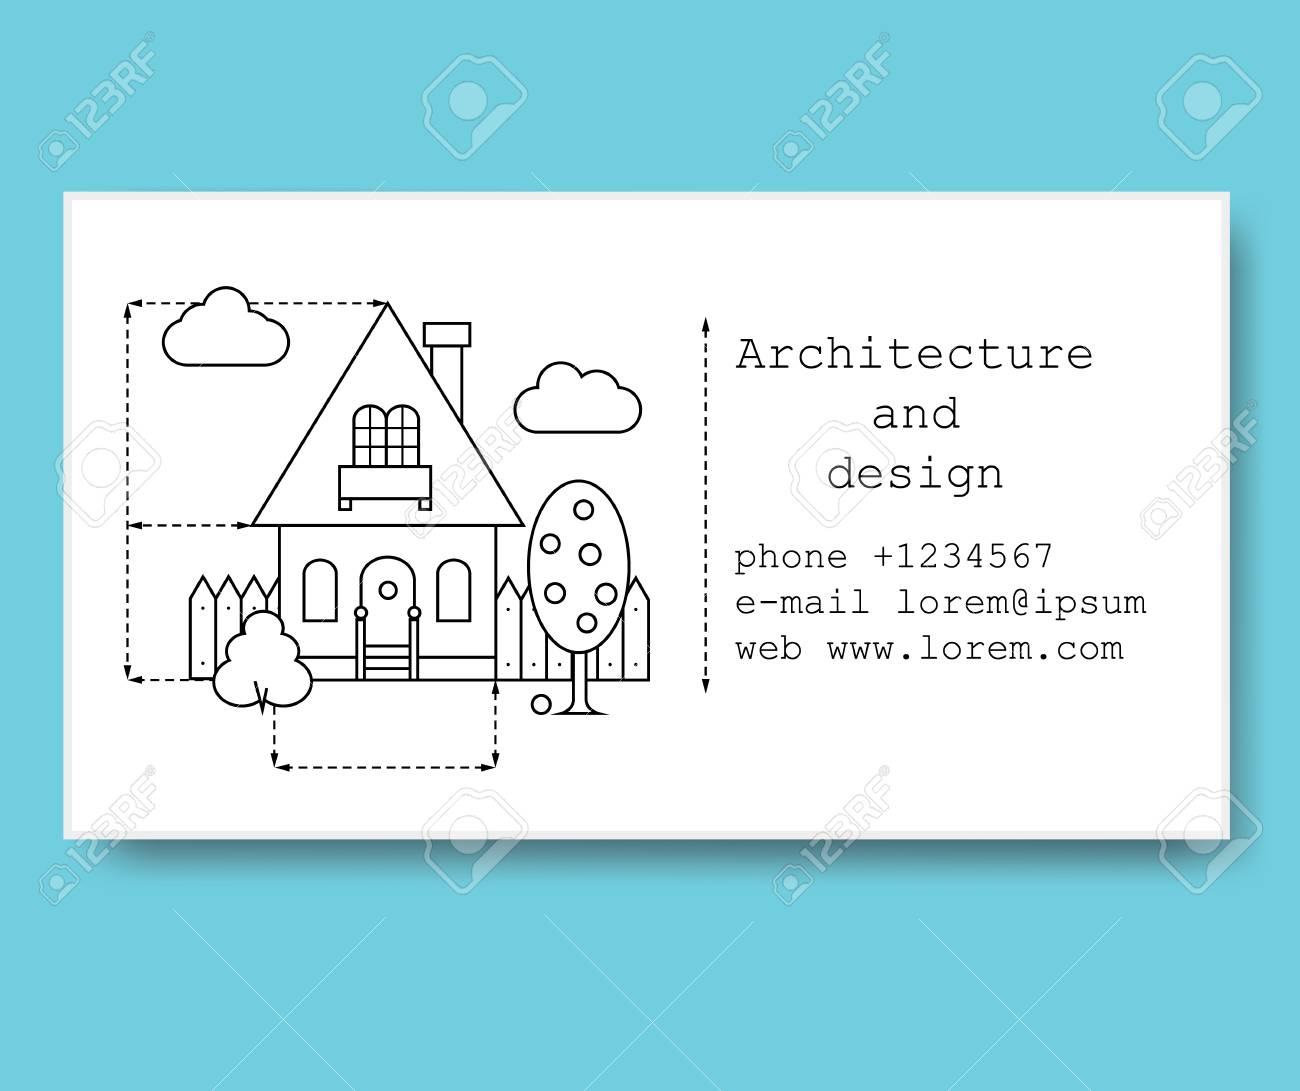 Business card template for construction company or architect business card template for construction company or architect business card in black and white style reheart Gallery